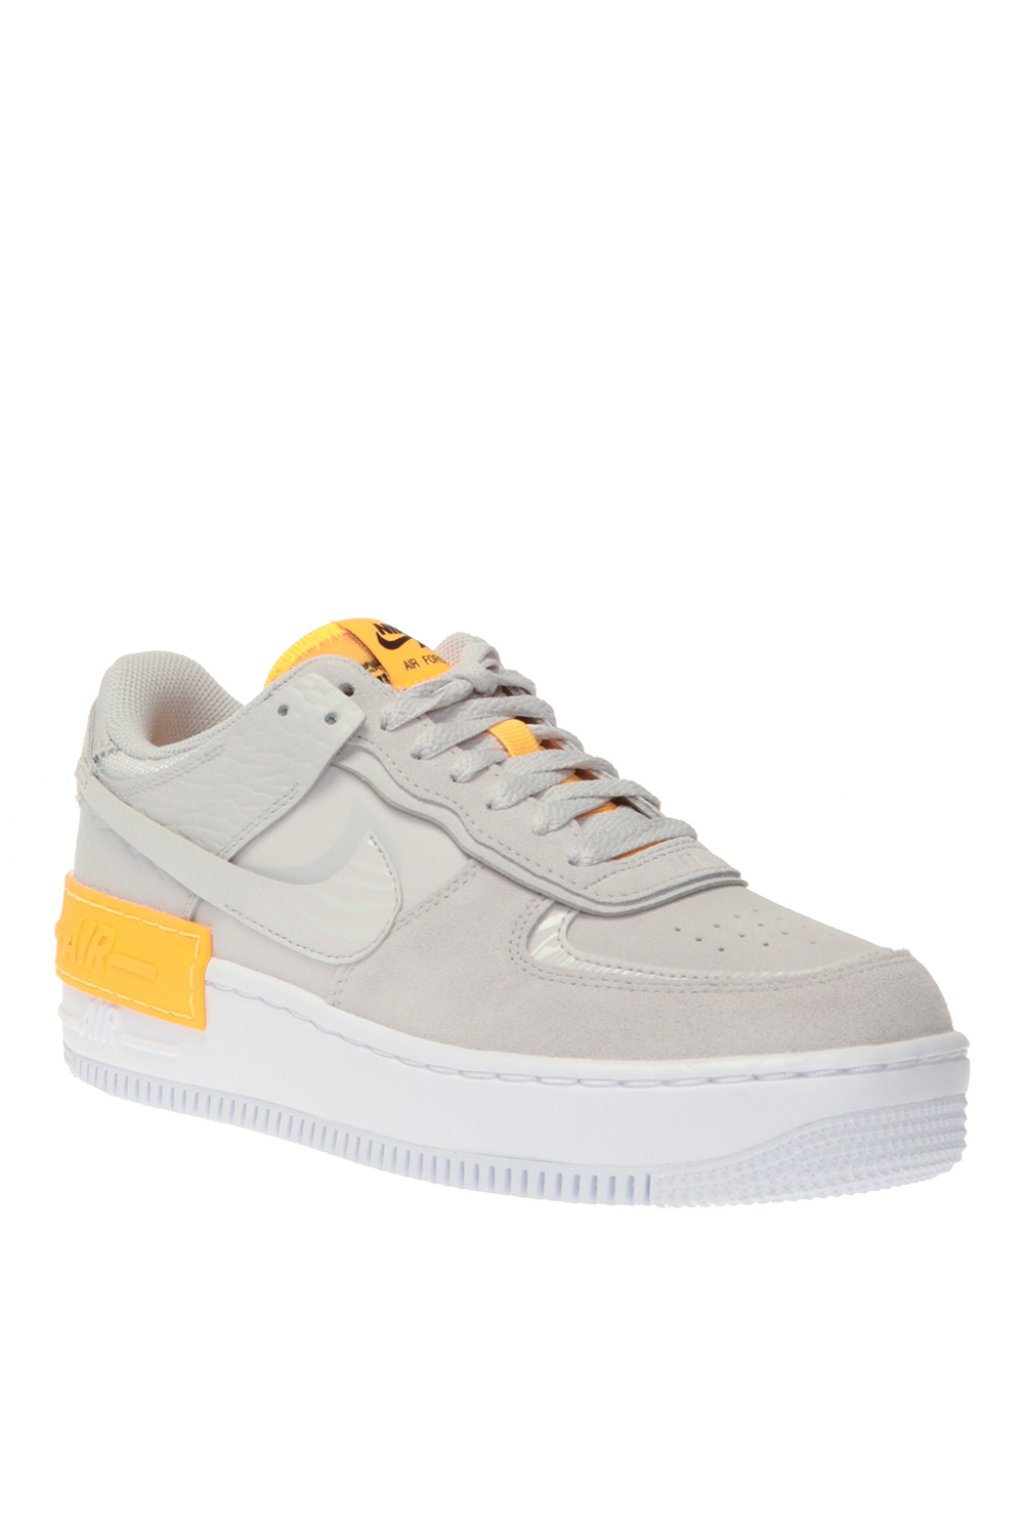 Air Force 1 Shadow Sneakers Nike Vitkac Canada There are 1204 air force gucci for sale on etsy, and they cost $184.12 on average. air force 1 shadow sneakers nike